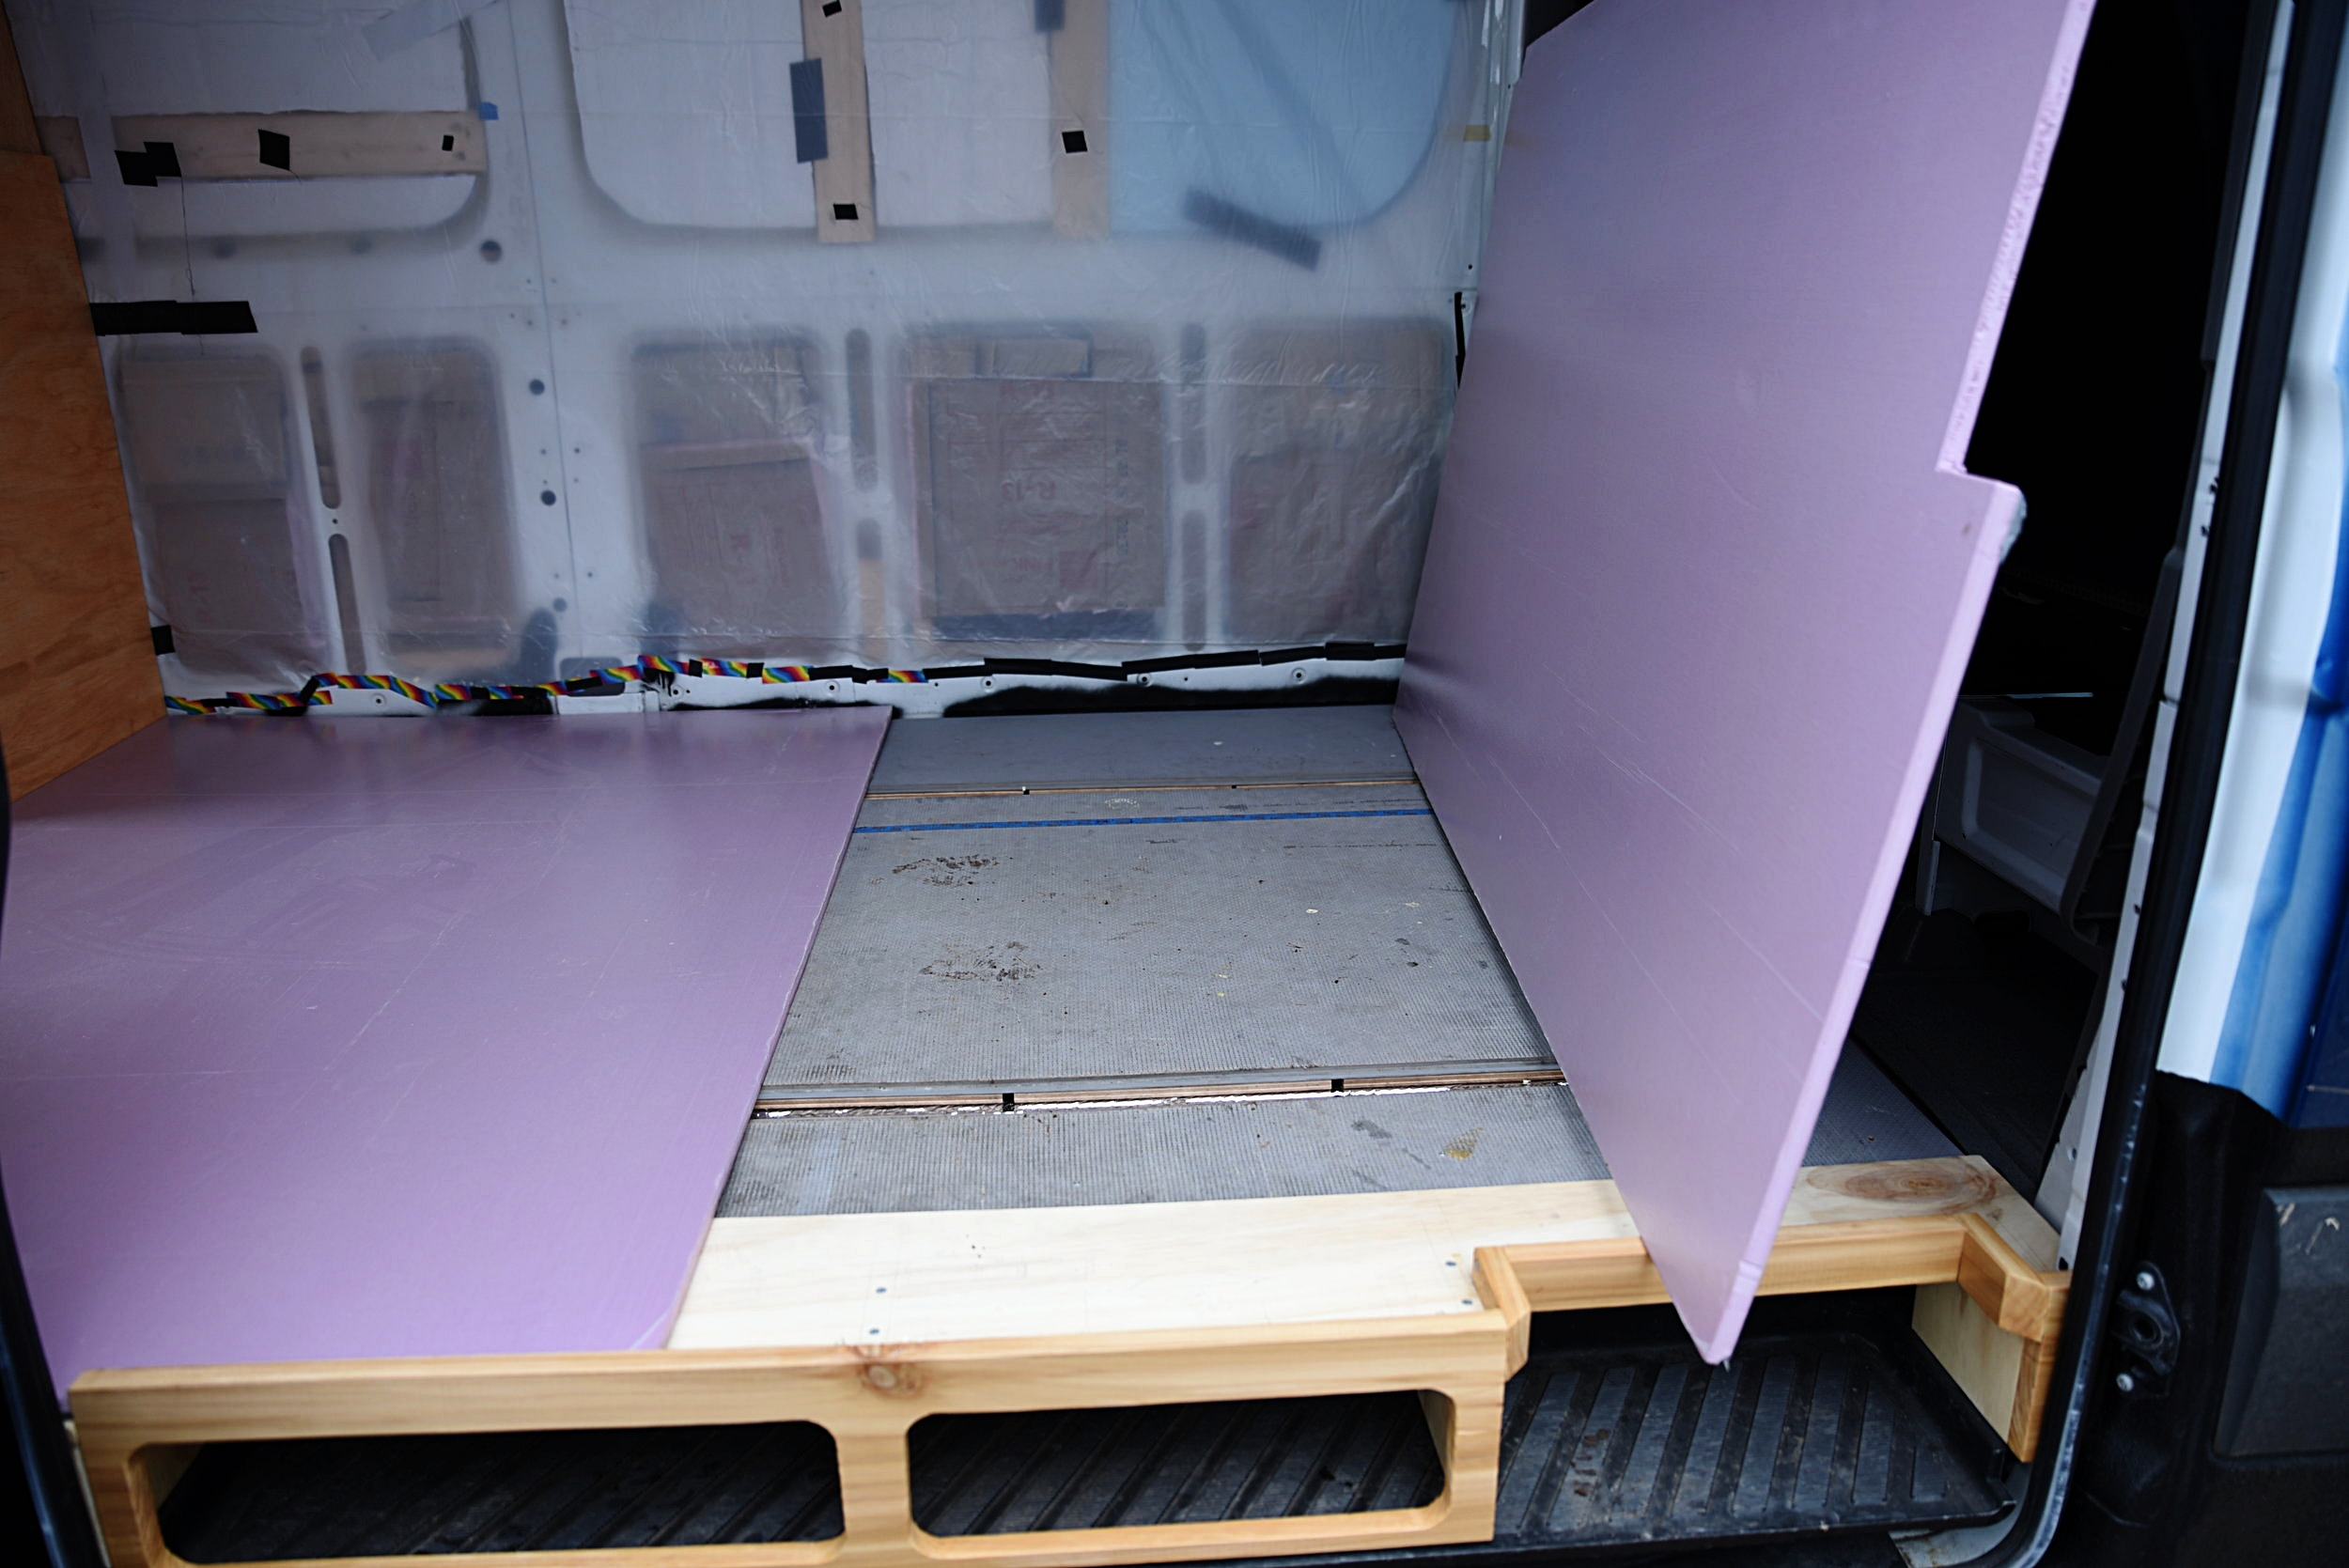 1/2-inch XPS insulation under our floor adds an R-value of 3.0 to keep or toes warm on cold mornings.